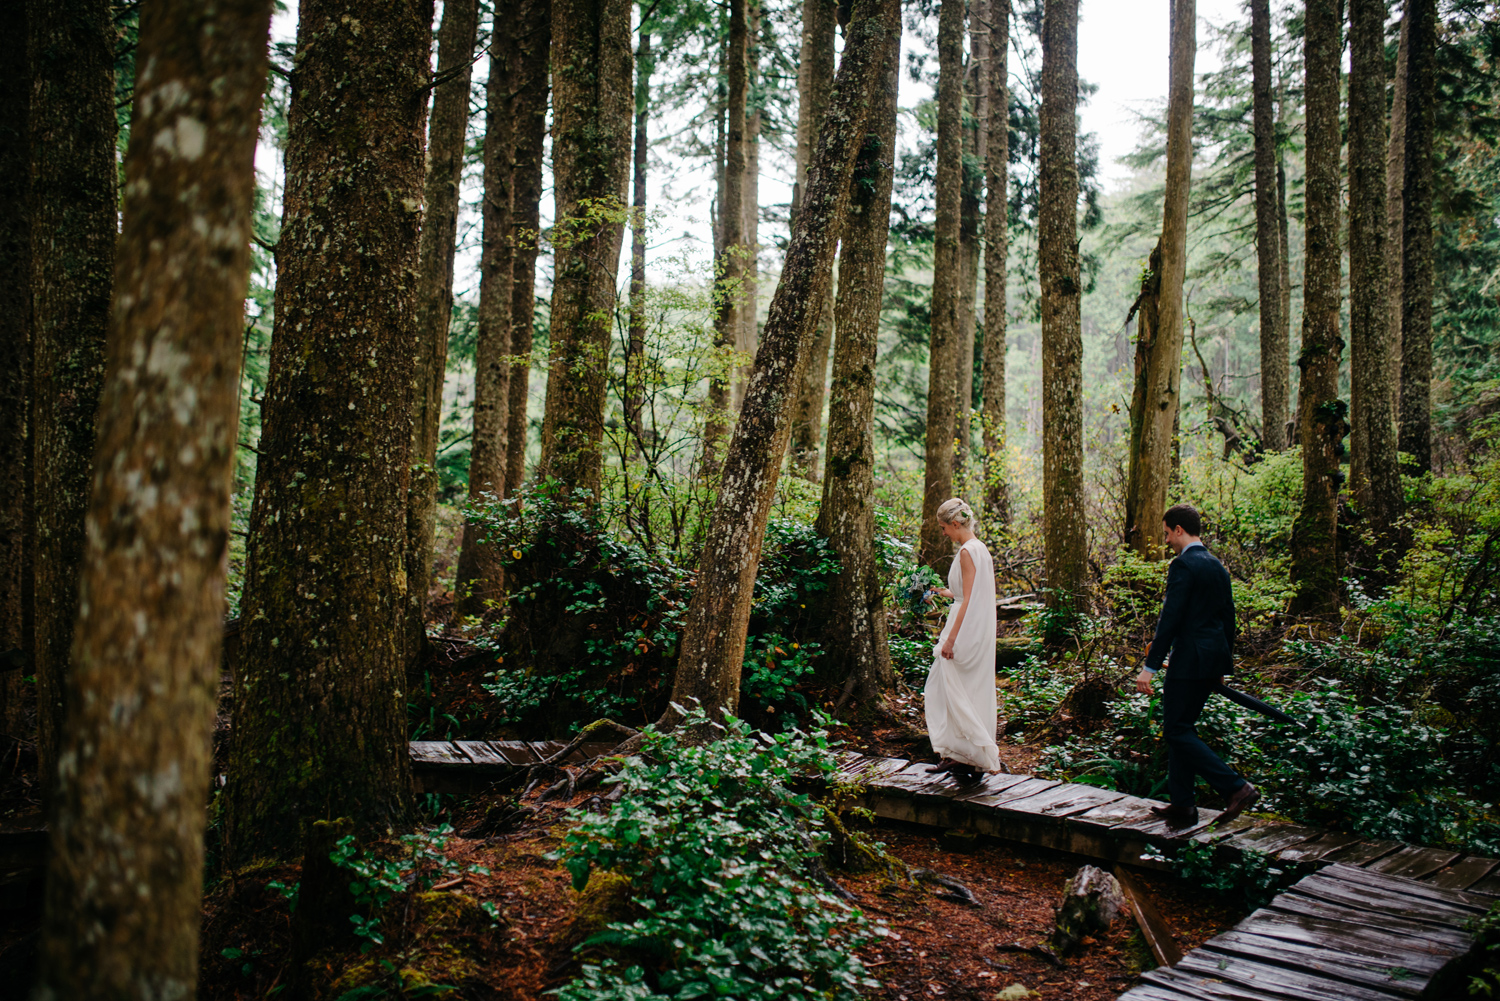 016-pnw-coastal-elopement-at-cape-flattery-by-seattle-wedding-photographer-ryan-flynn.jpg